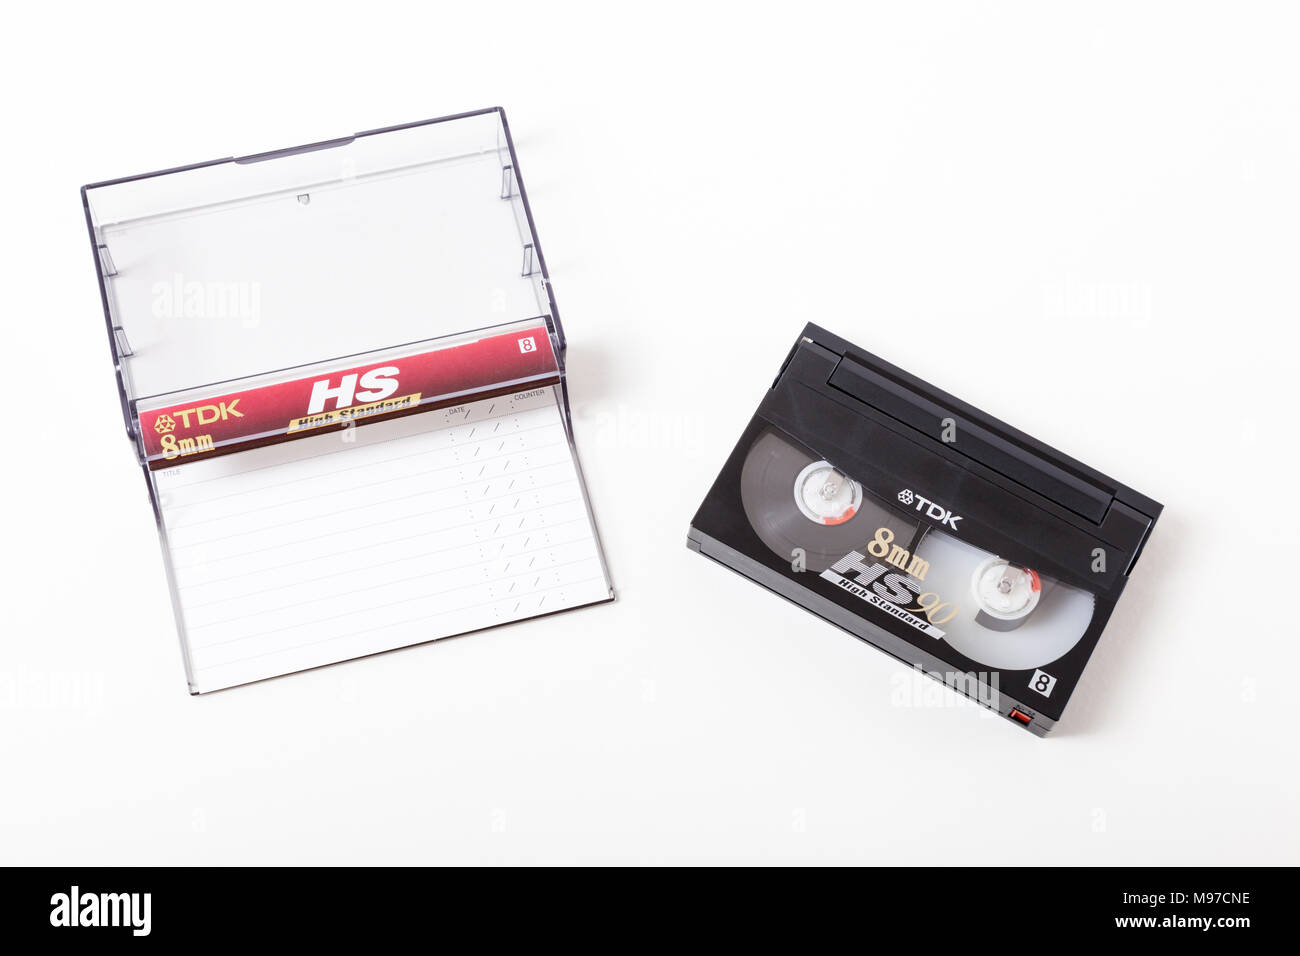 TDK HS90 8mm video camera recording cassette tape with box - Stock Image